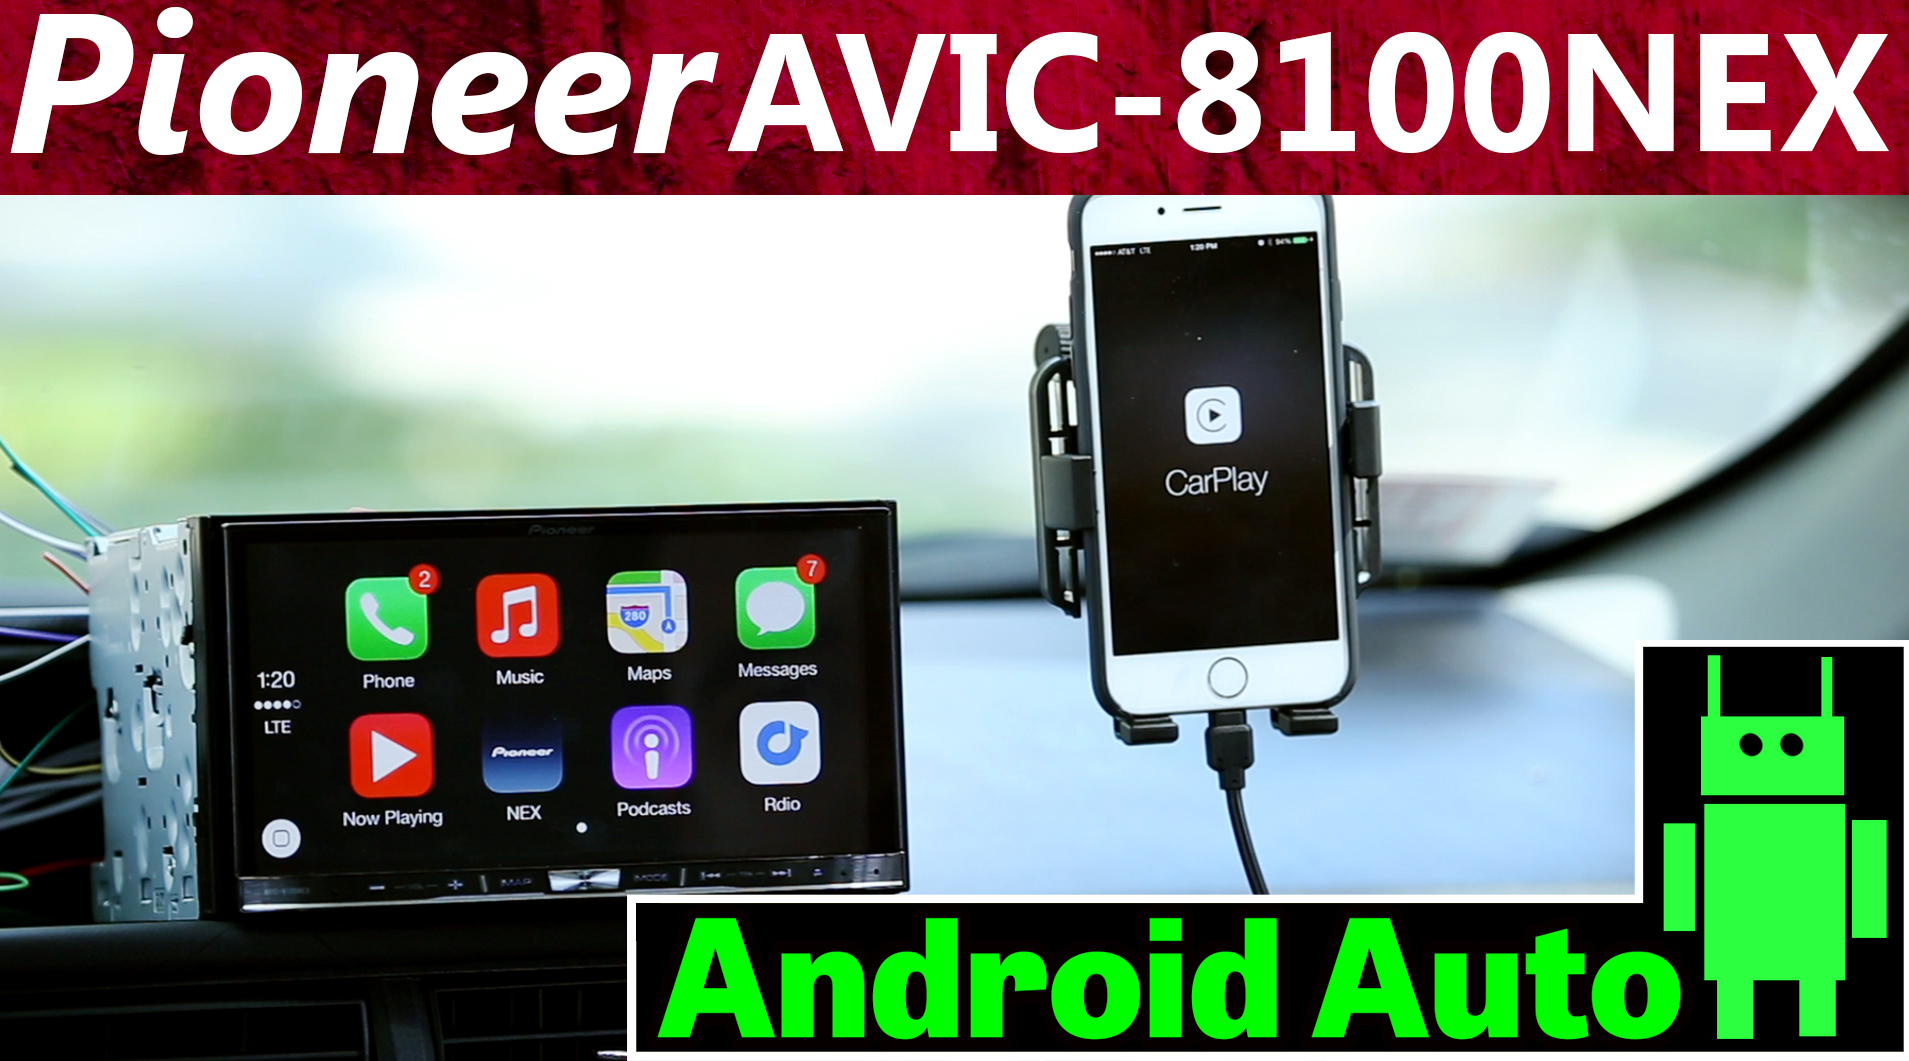 2015 Pioneer AVIC-8100NEX With Android Auto Overview and Review